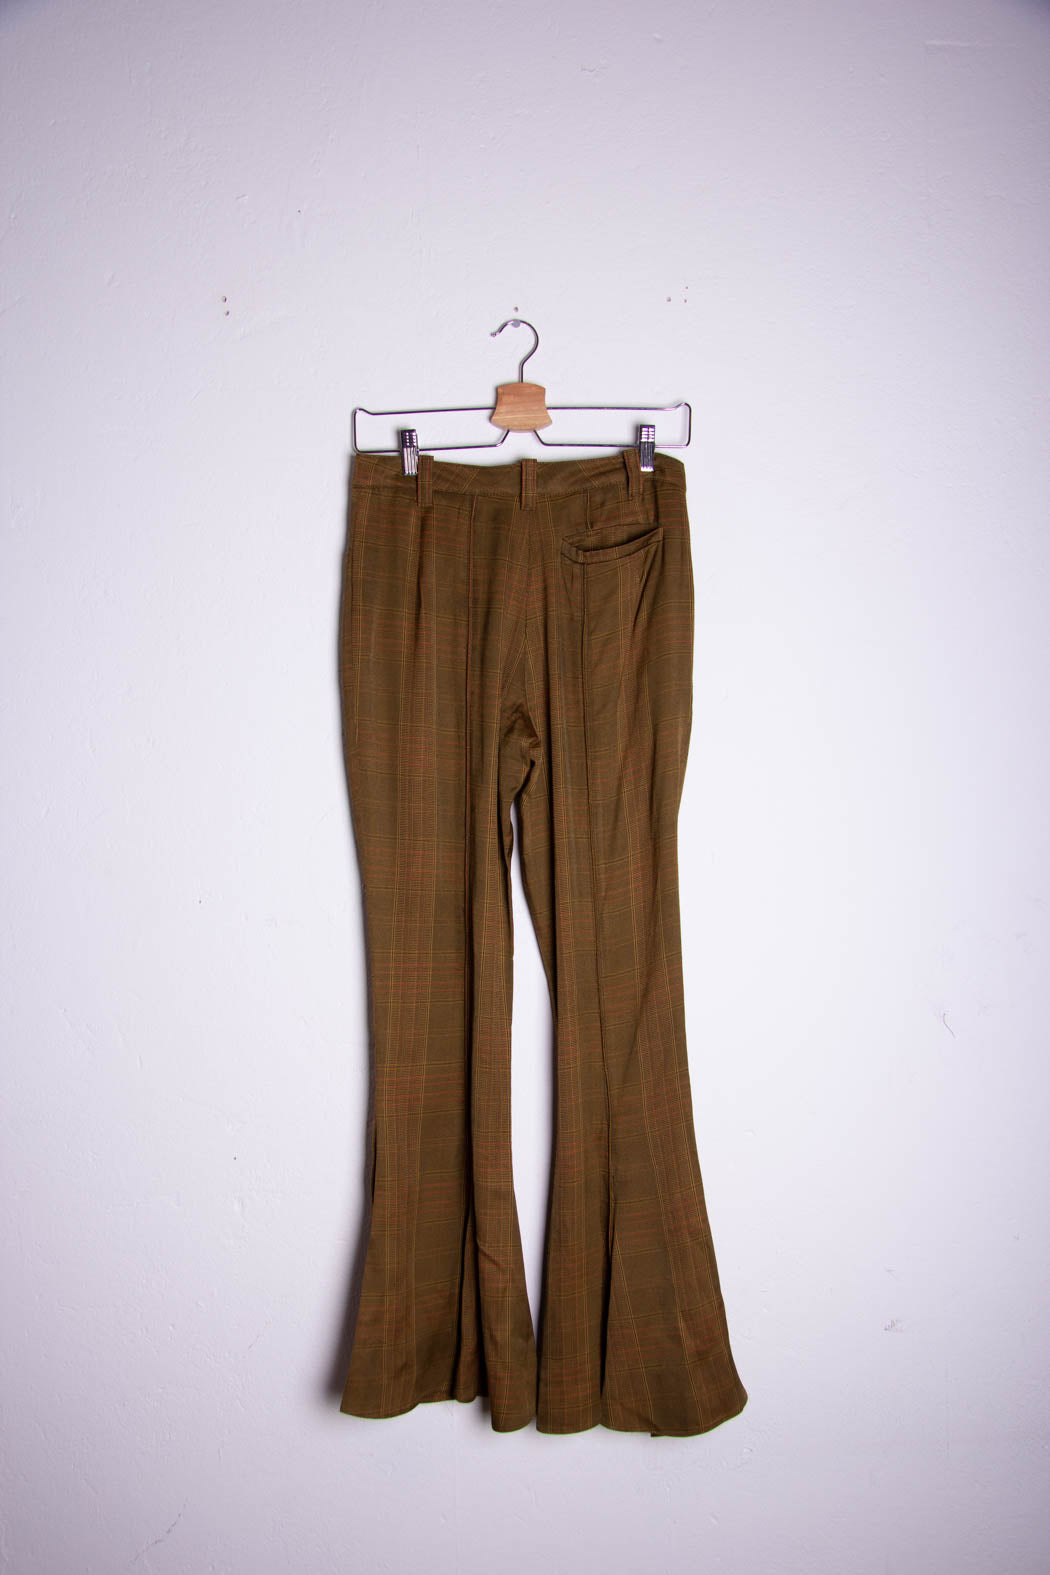 Flared Trousers (women's)